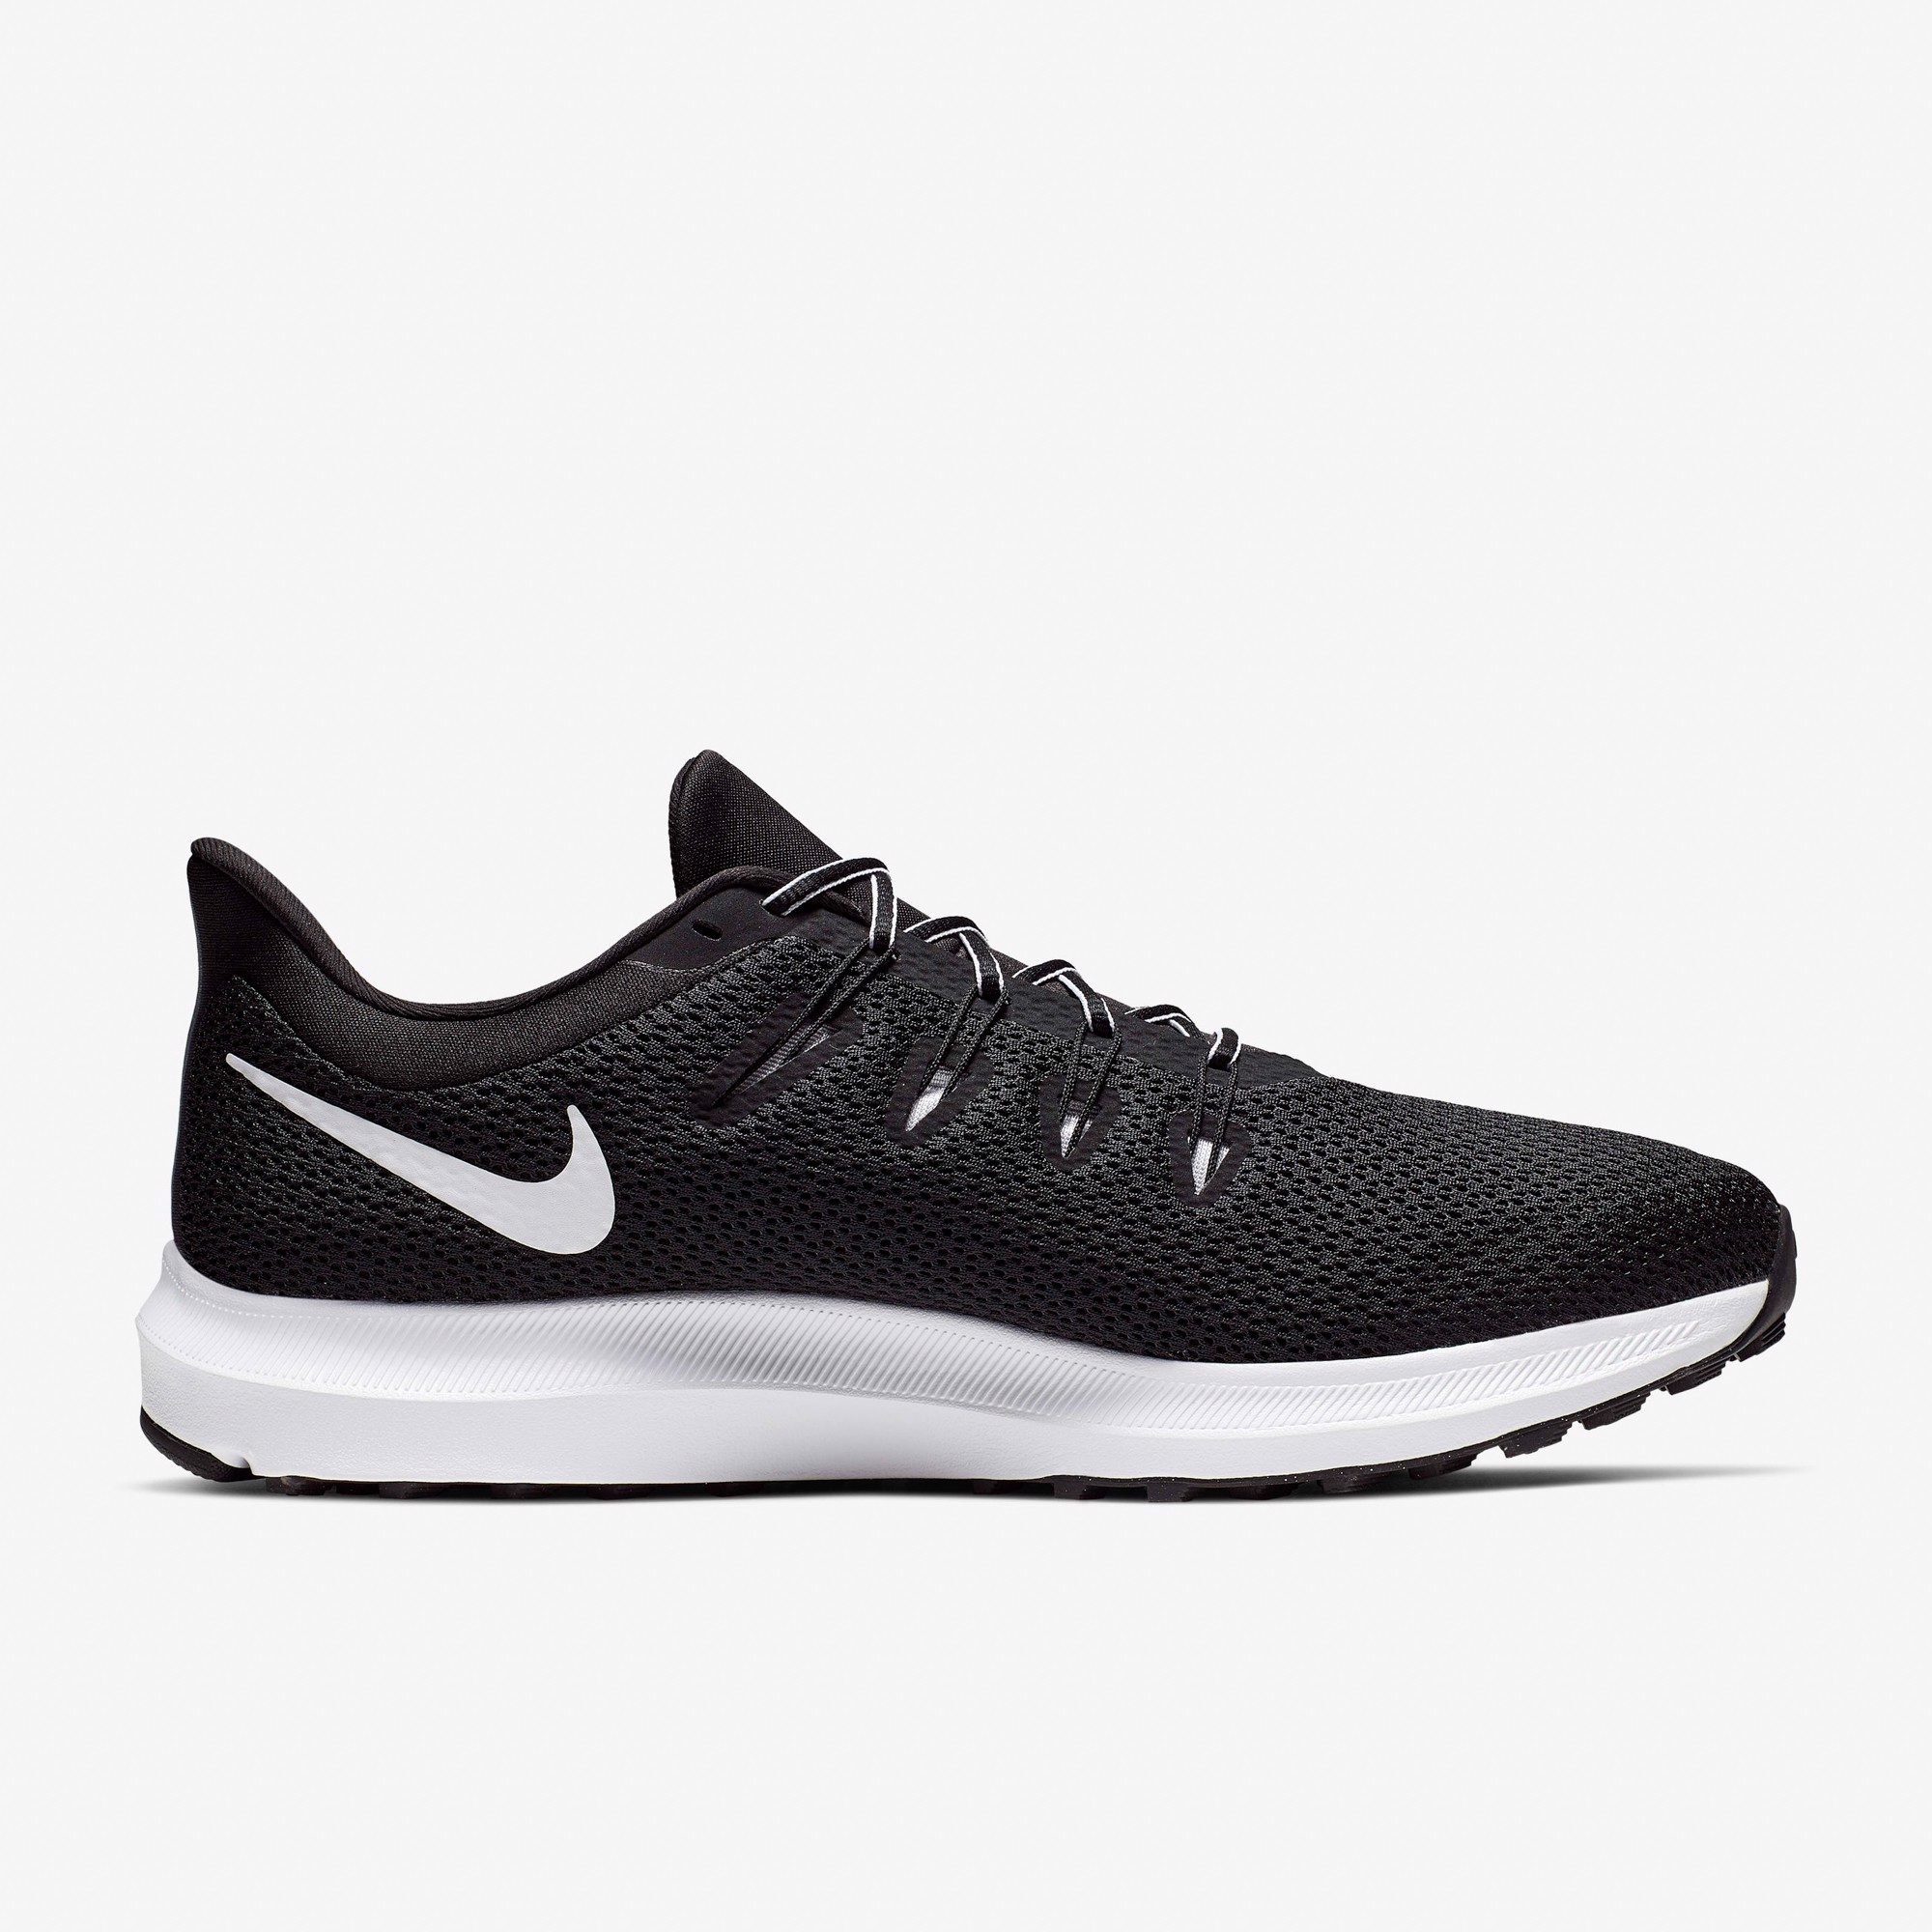 Nike Quest 2 - Black/White